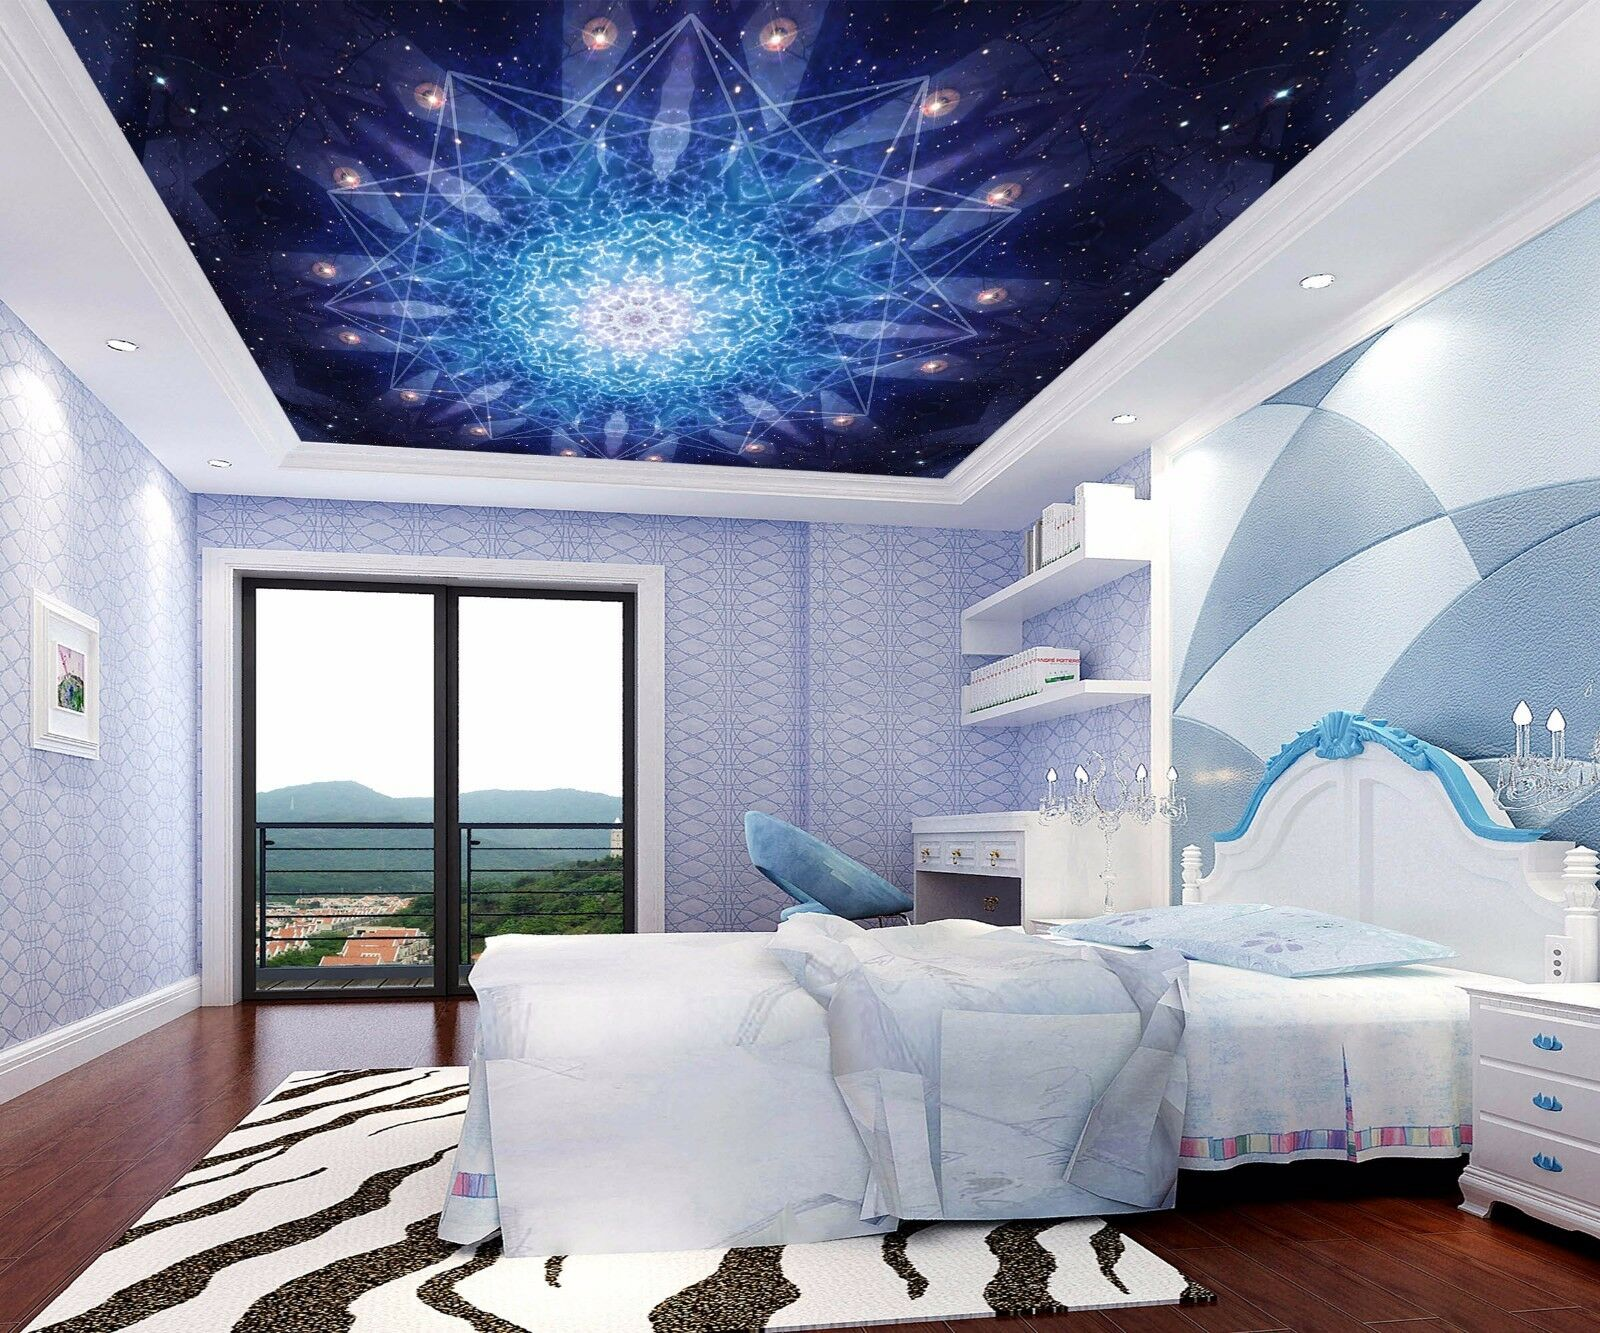 3D Bule Pattern 5 Ceiling WallPaper Murals Wall Print Decal Deco AJ WALLPAPER AU